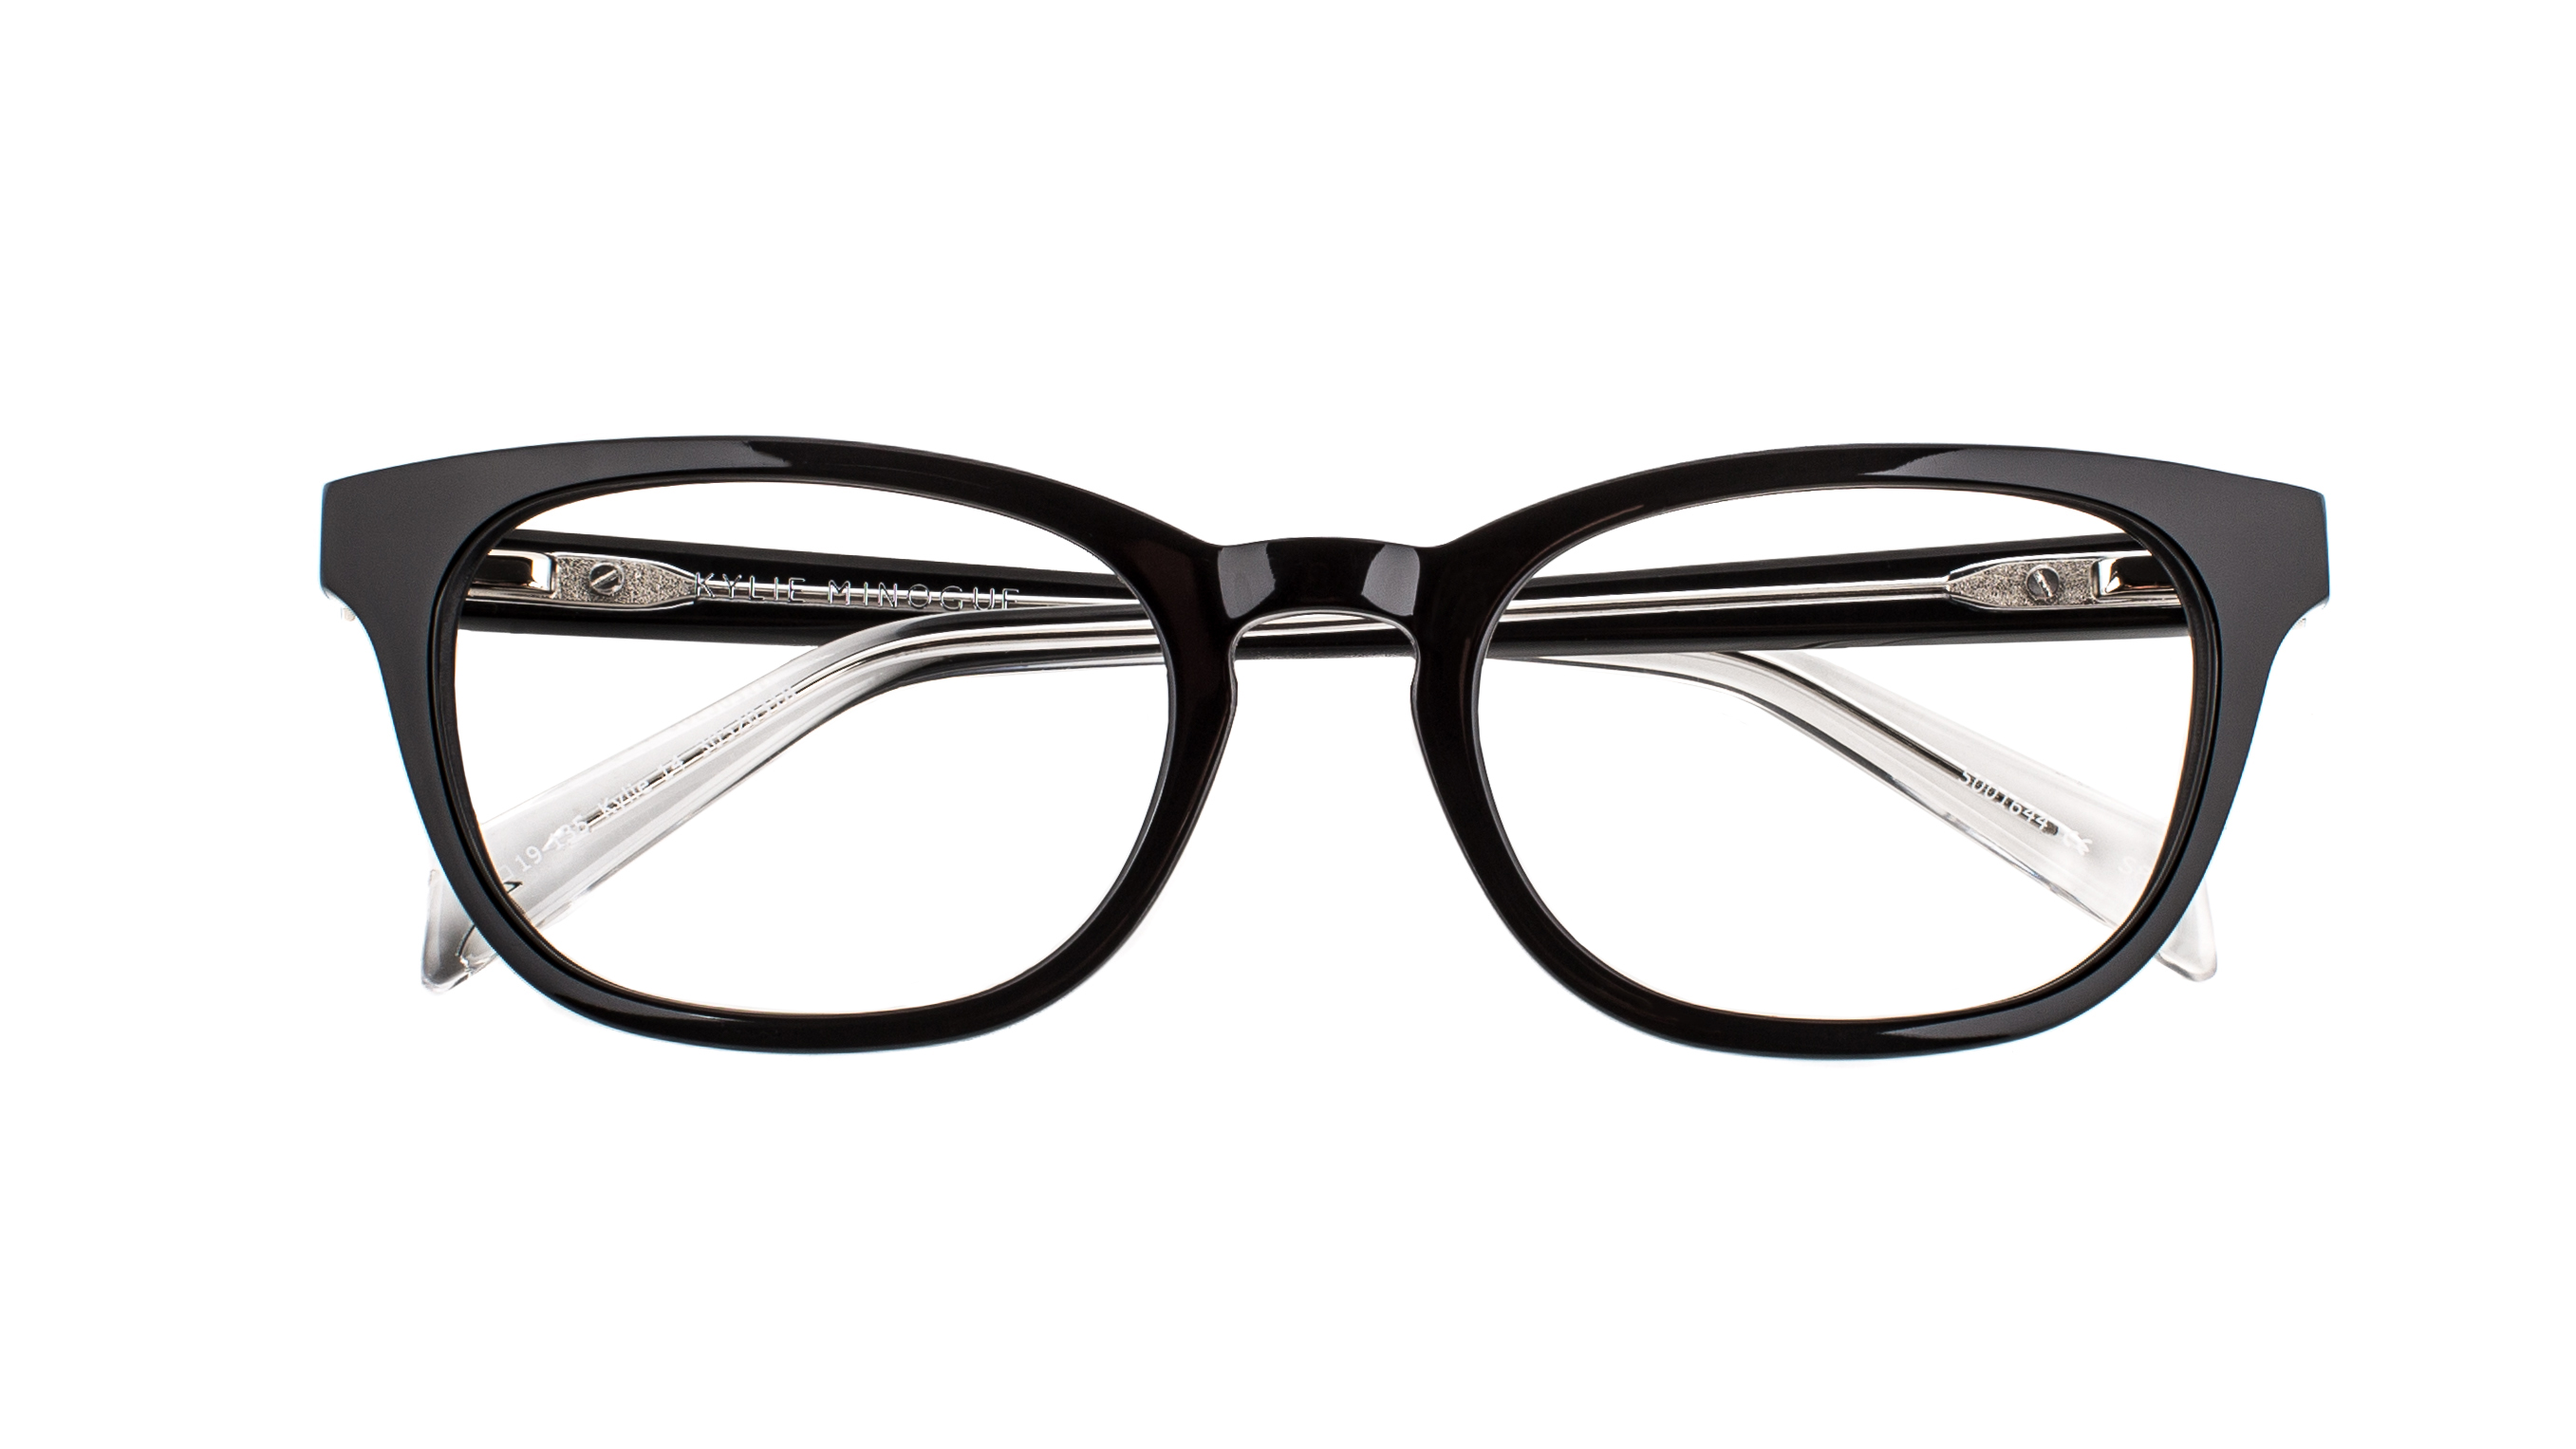 Kylie Minogue Eyewear_Kylie 14_SKU 30520318_RRP 2 pairs from $369